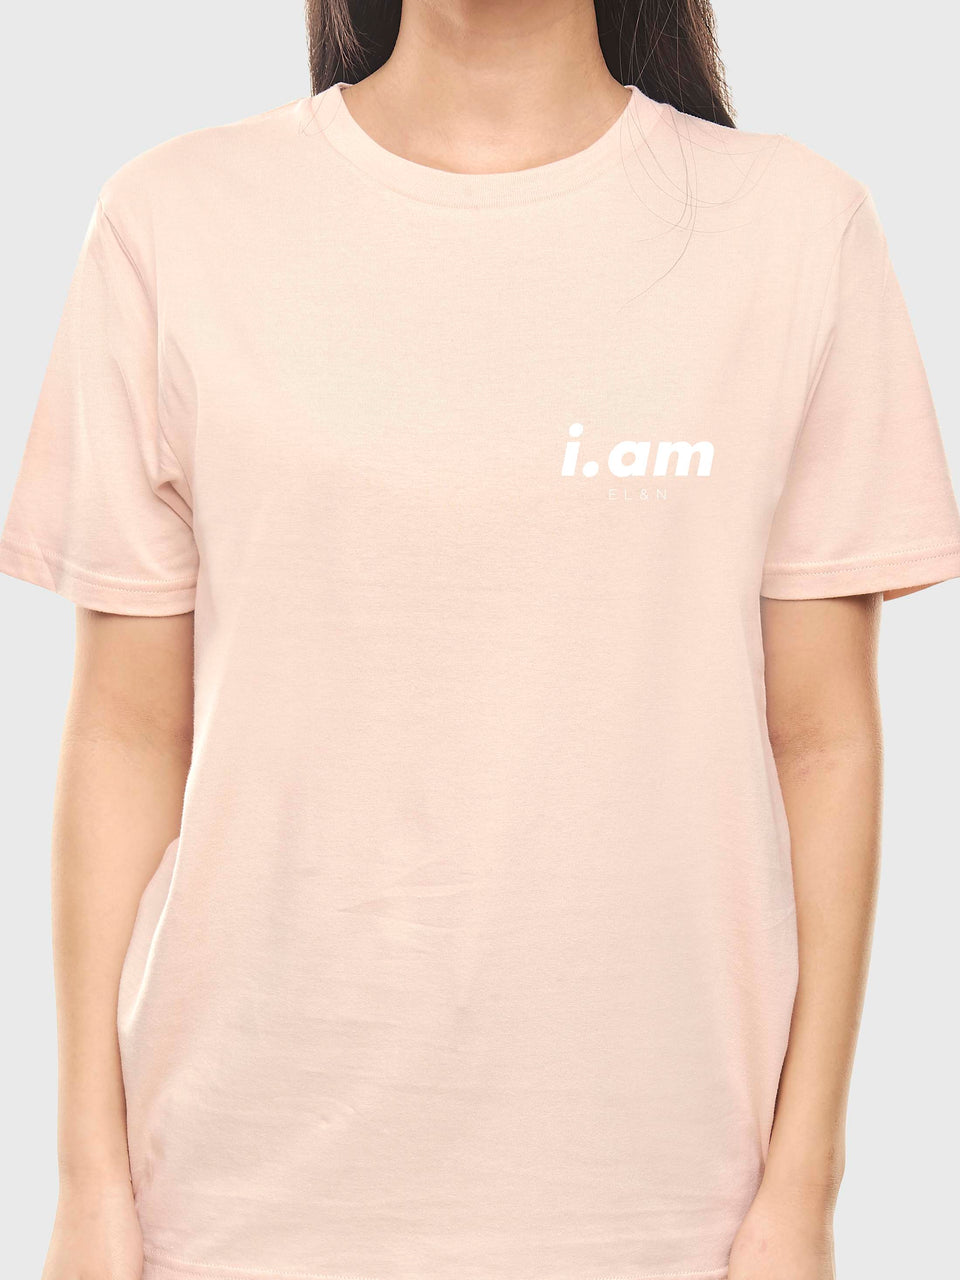 Not Your Baby - Pink - Unisex T